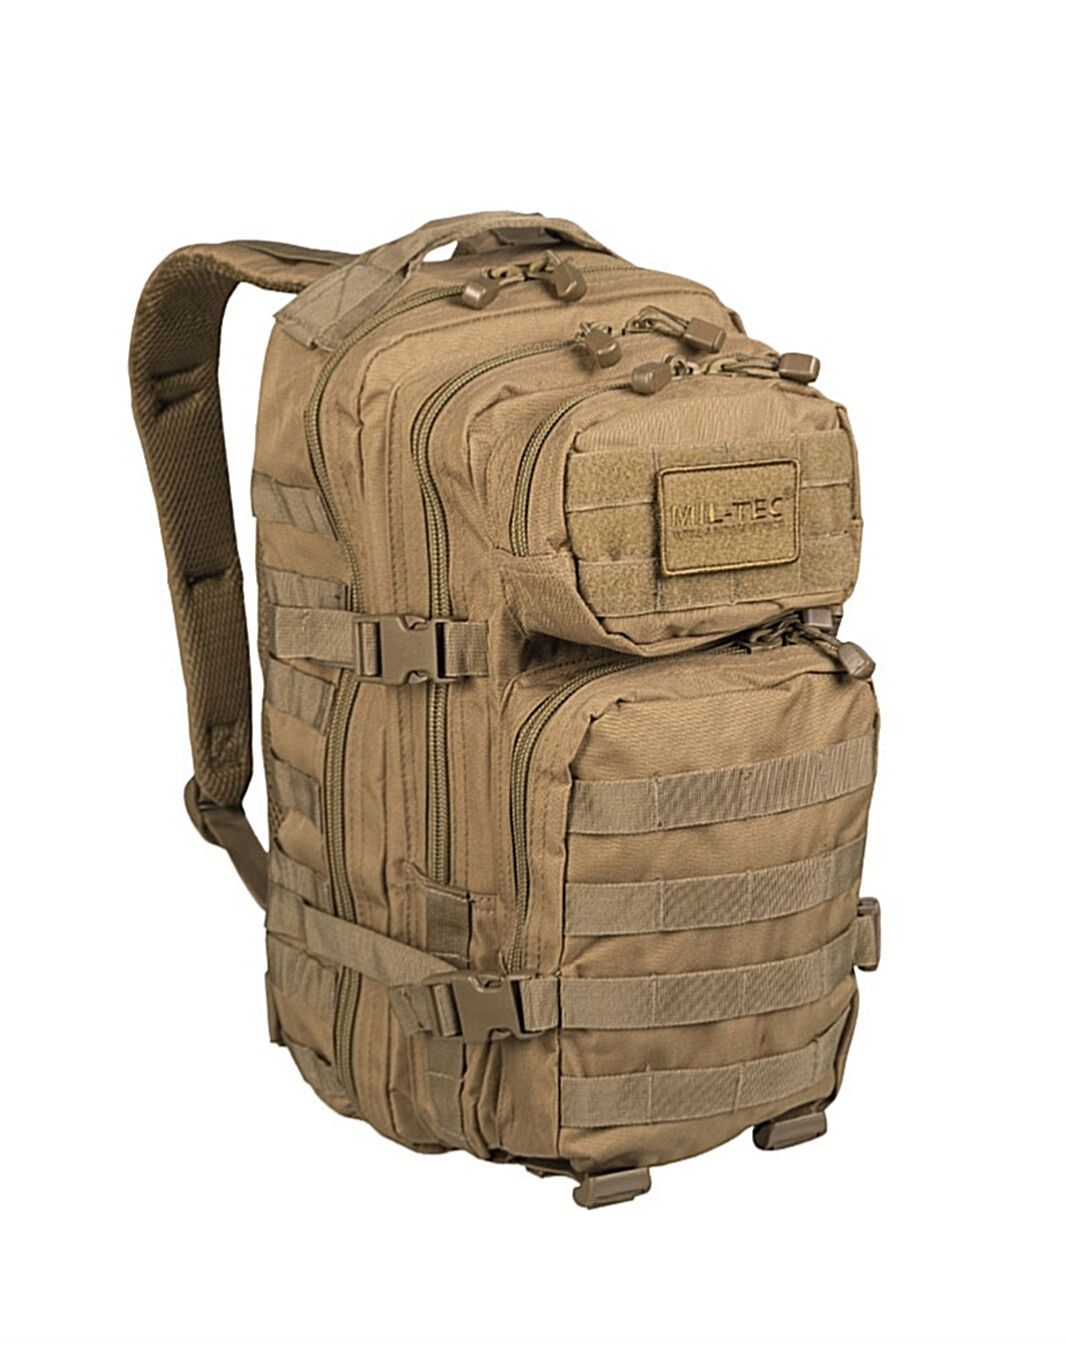 Batoh Assault pack SM coyote Miltec